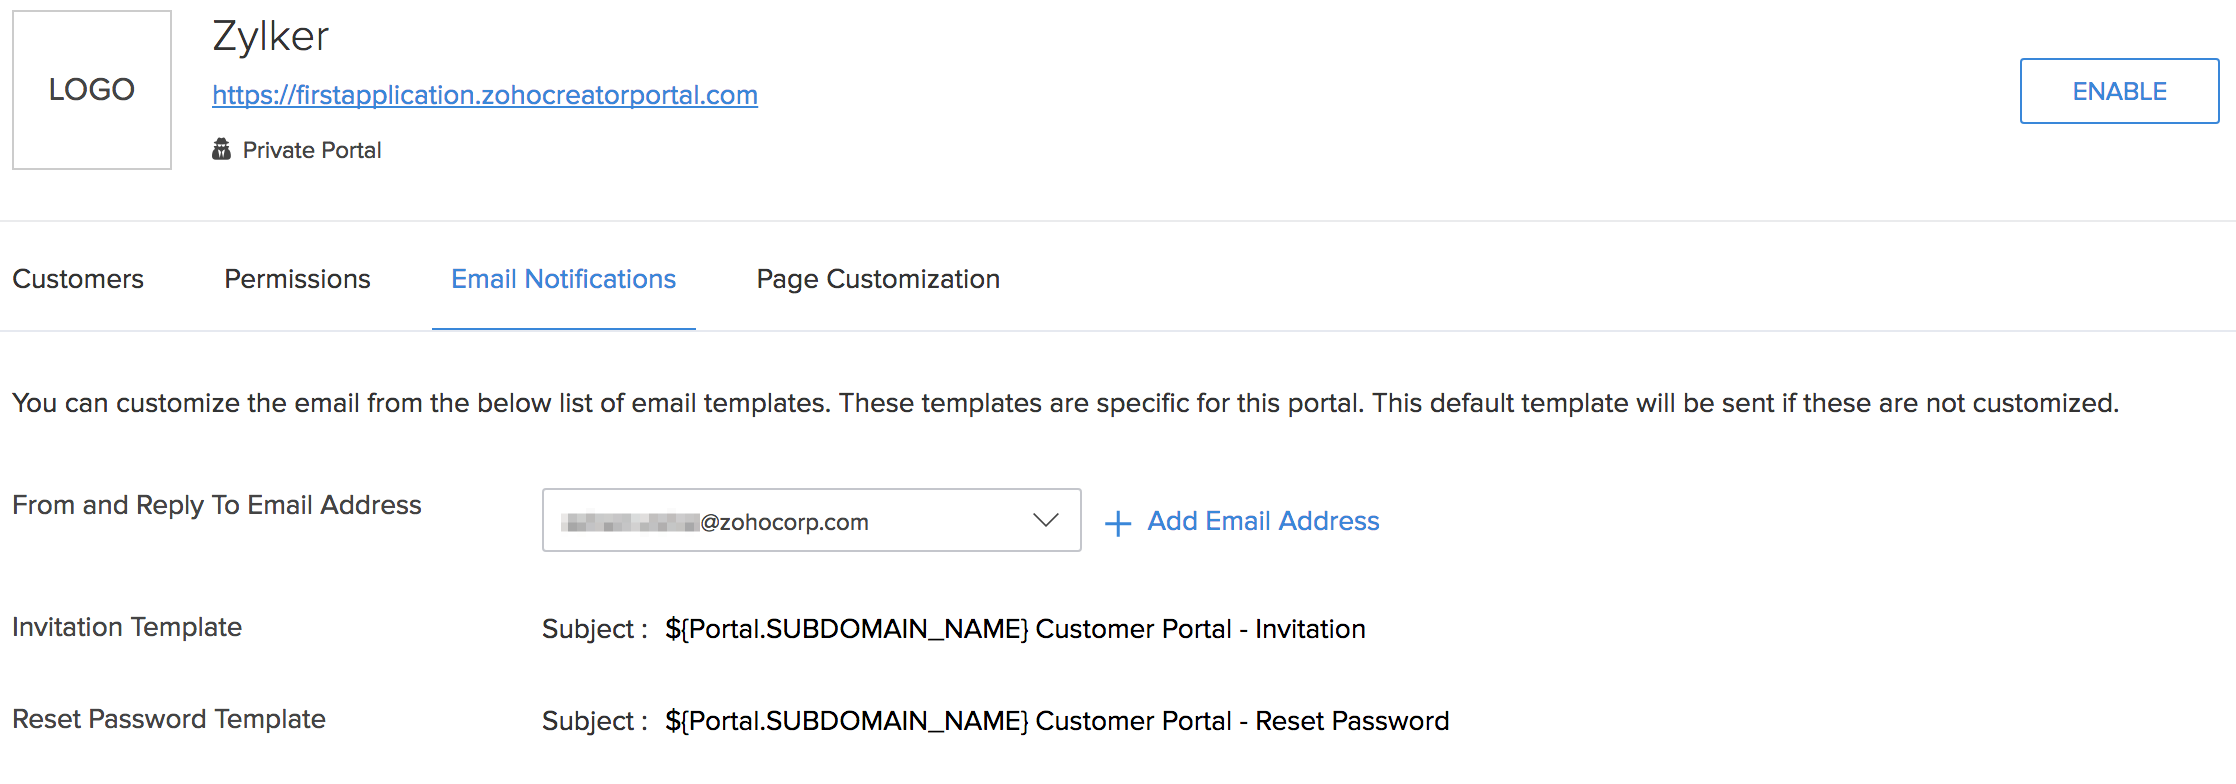 Customize Invitation Template In Customer Portal